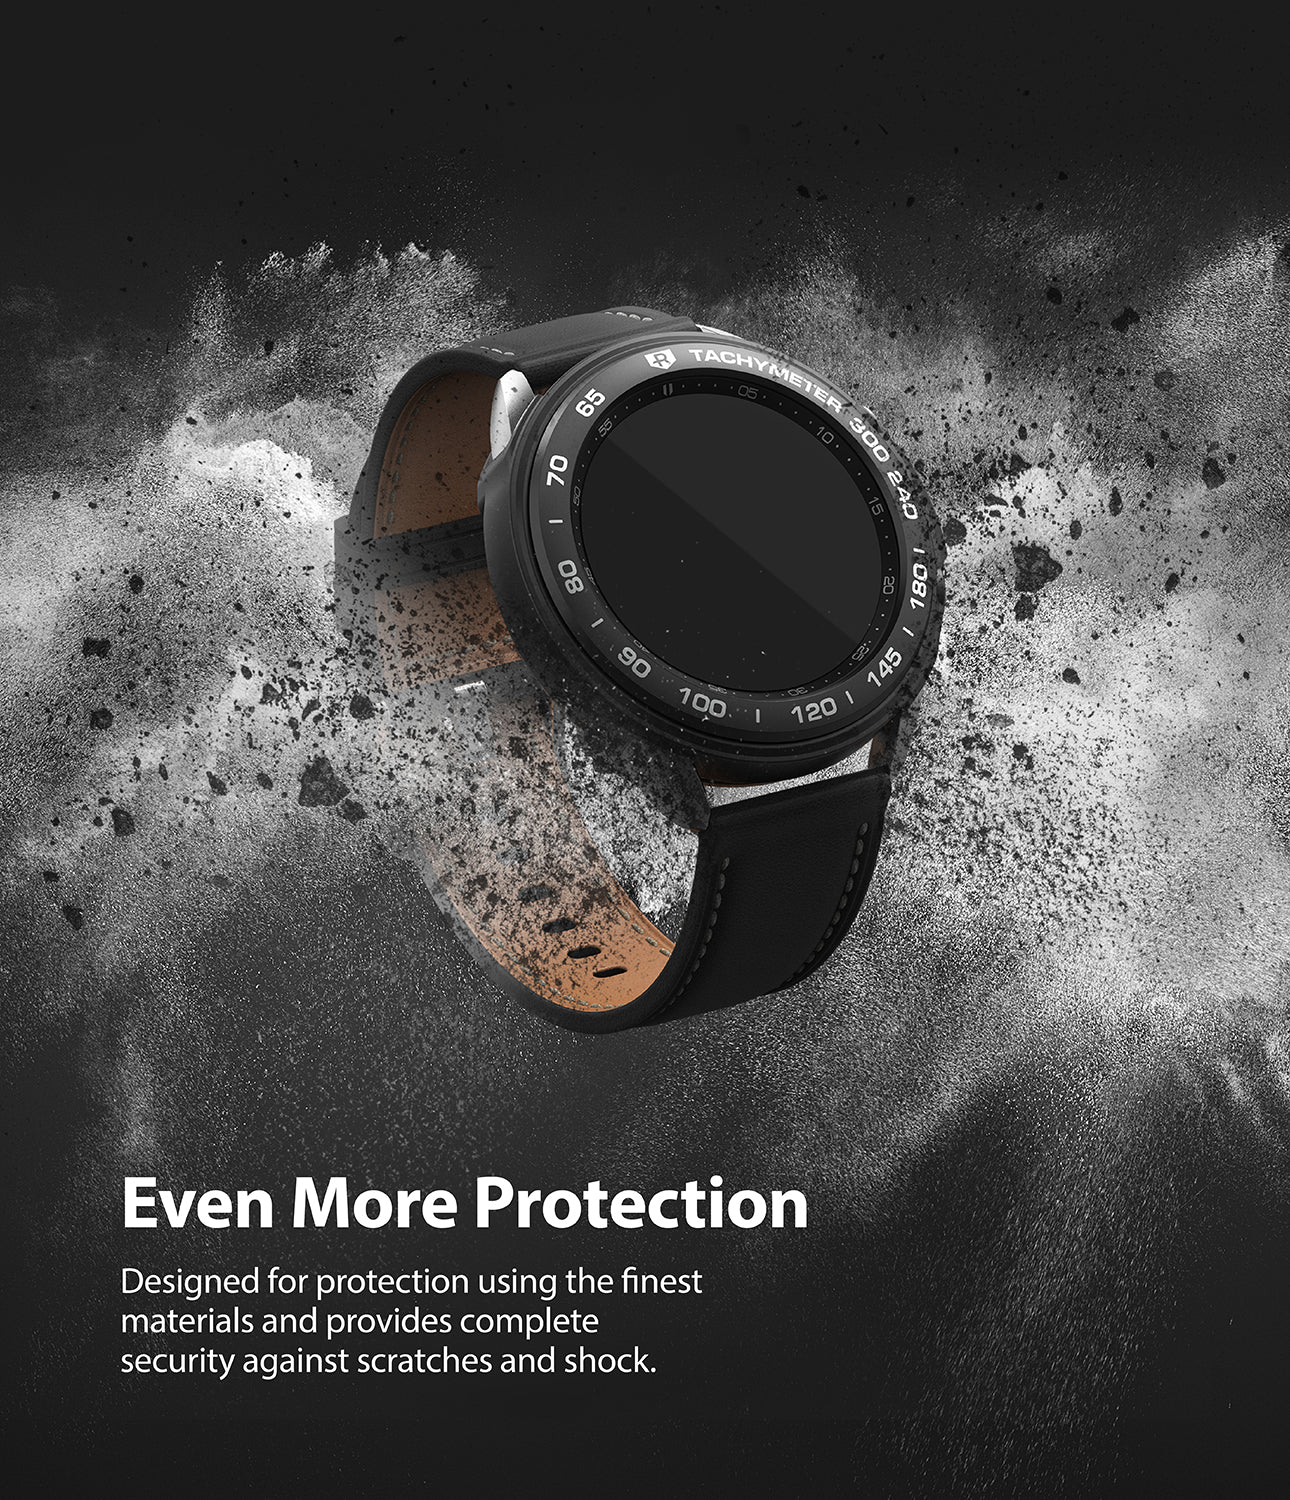 designed for proetction using the finest materials and provides complete security against scratches and shock